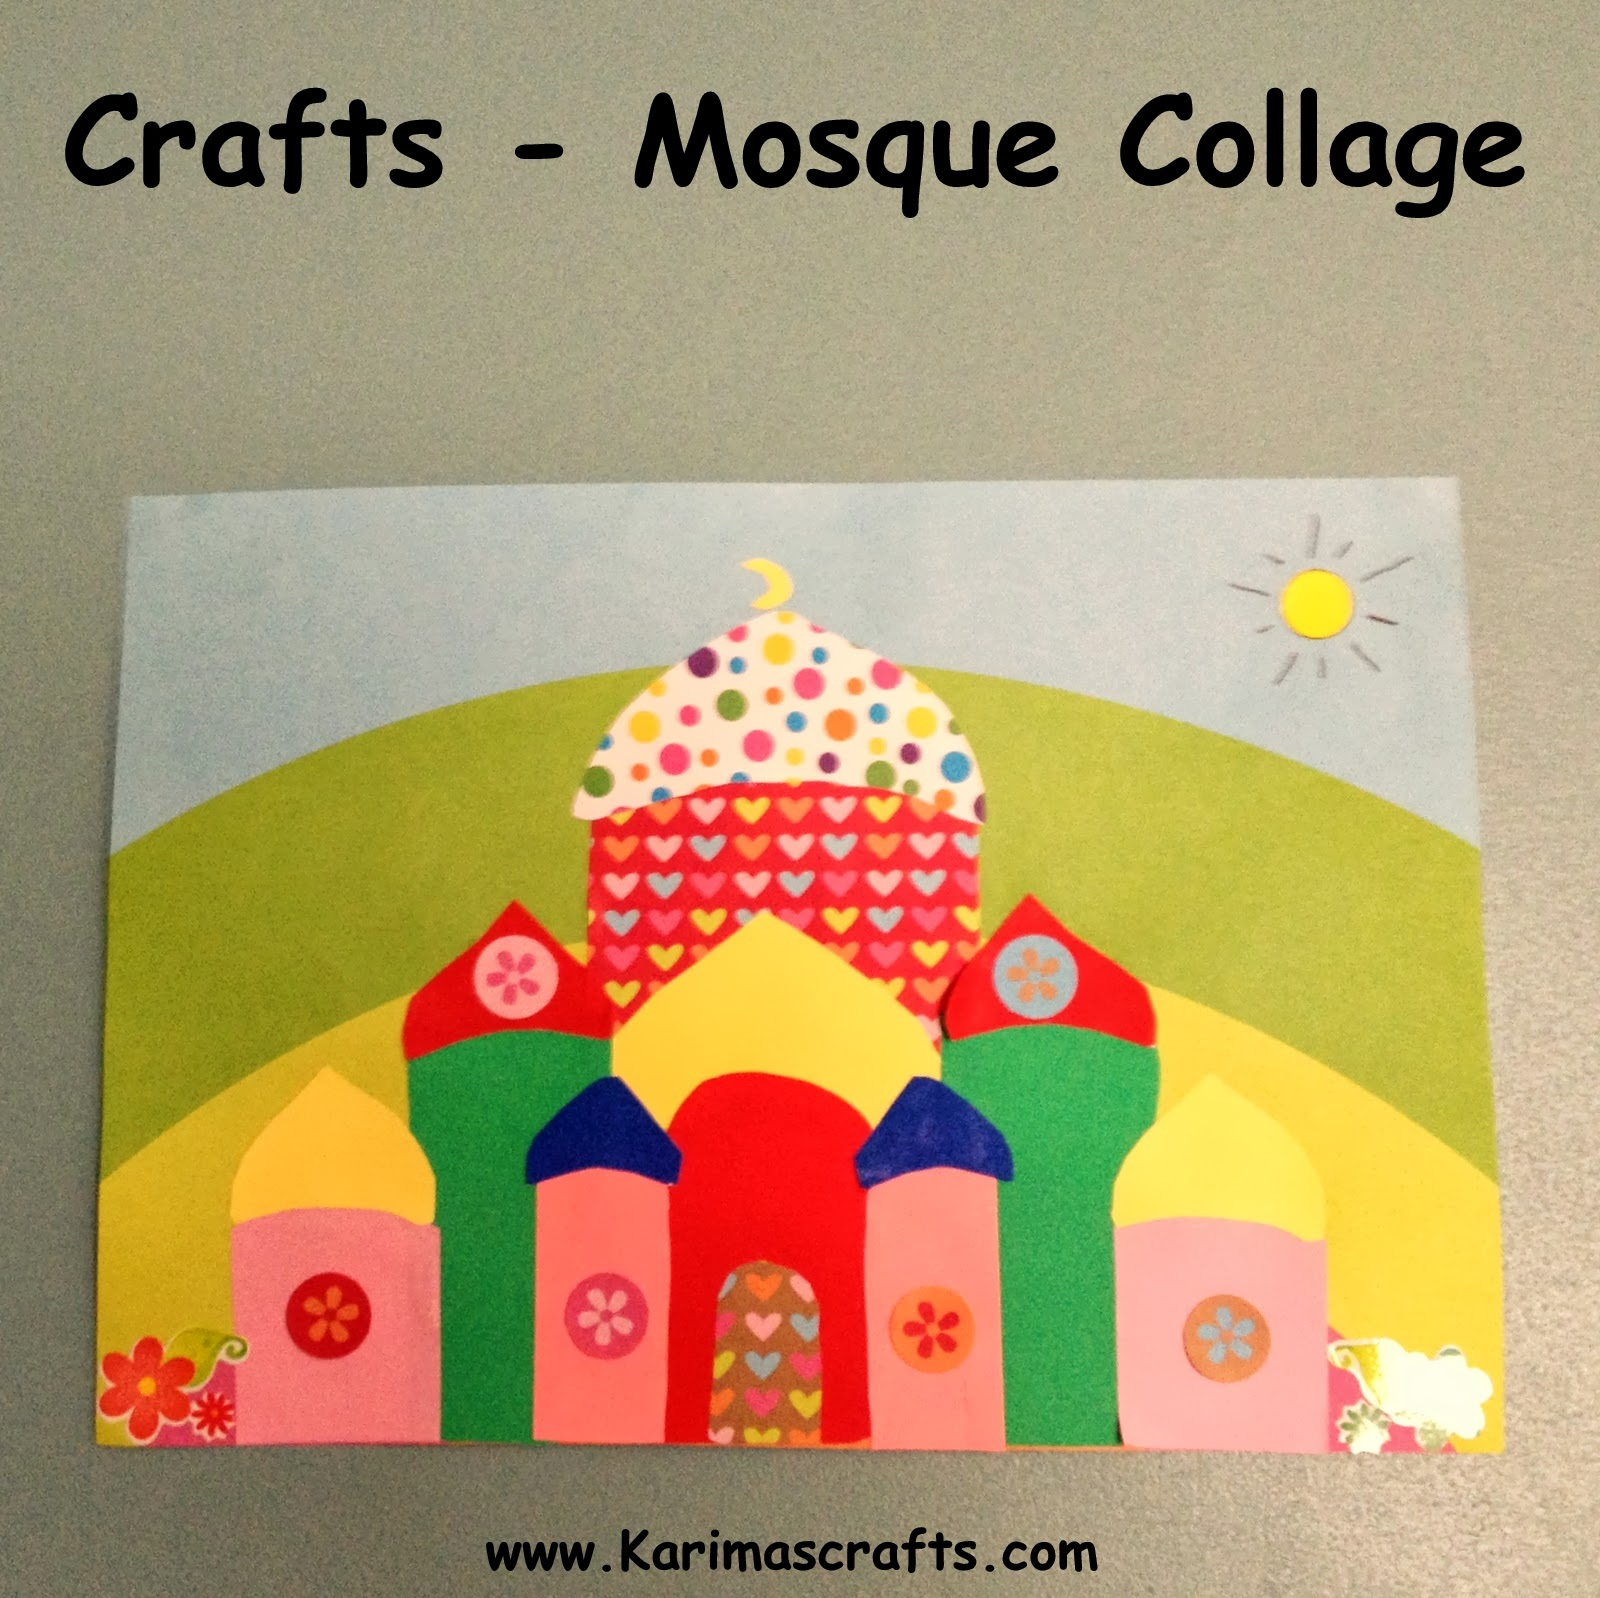 13 creative mosque crafts to make with kids in the playroom for Design your own home for kids